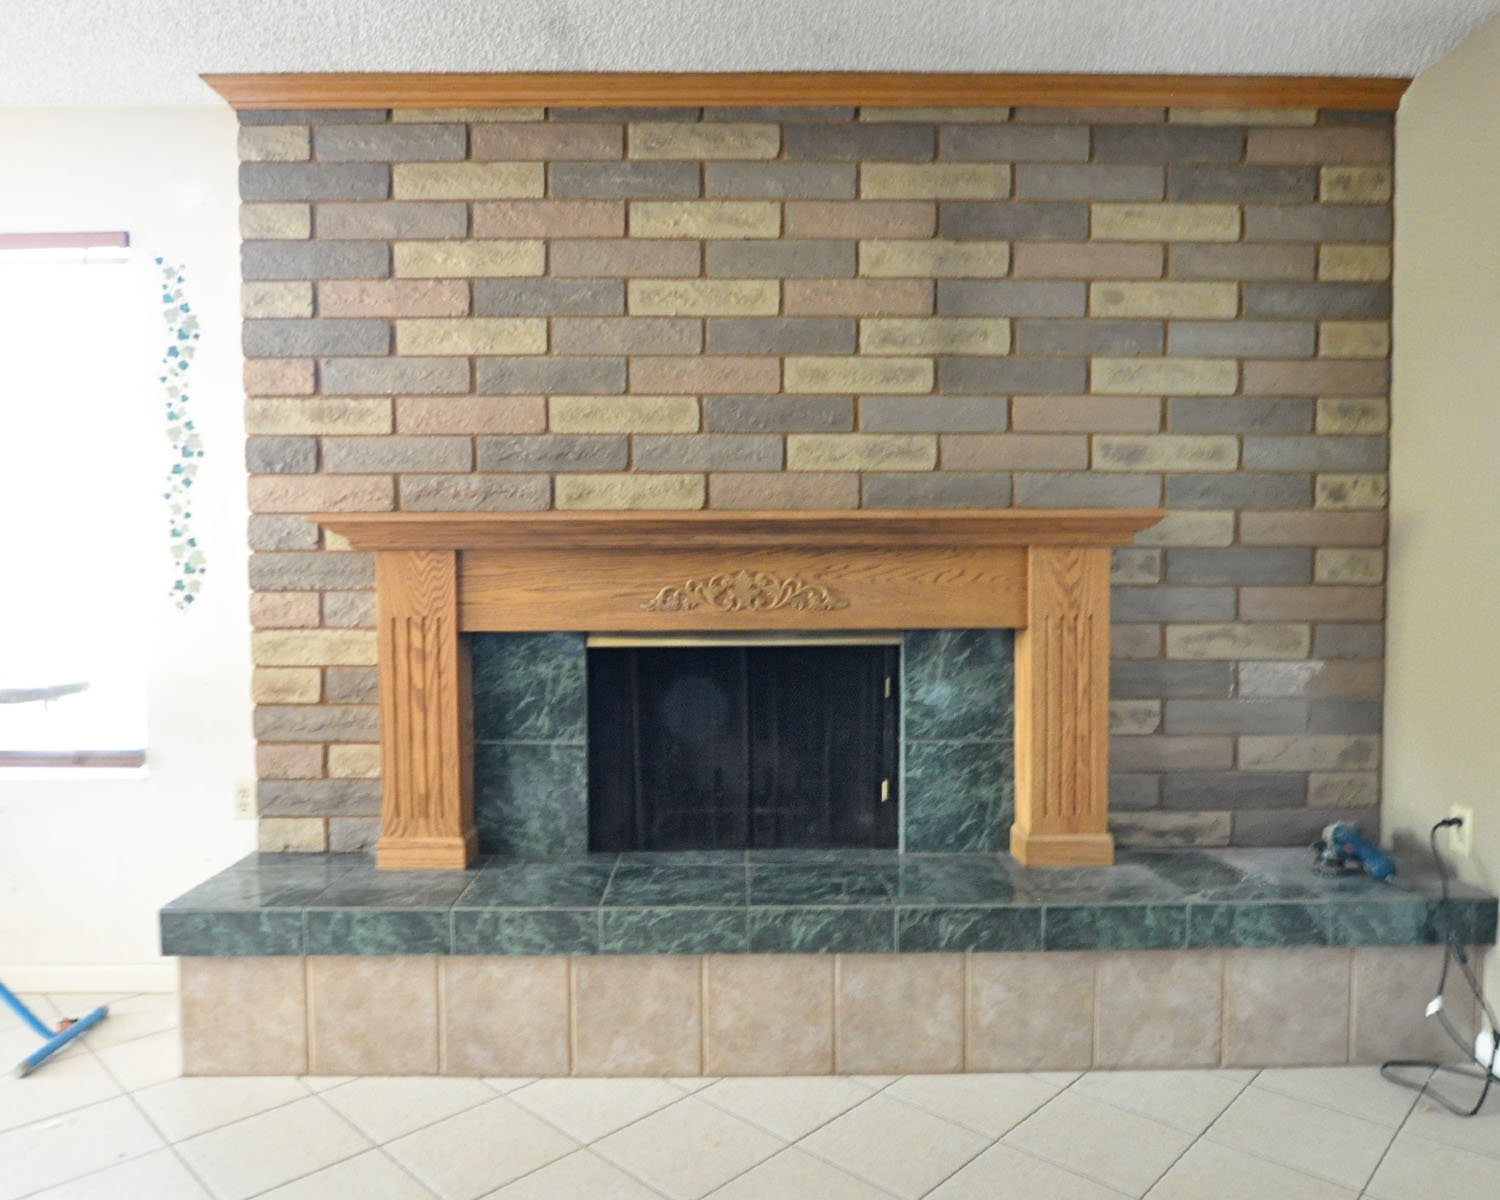 How To Re Tile A Fireplace Surround | Home Improvement